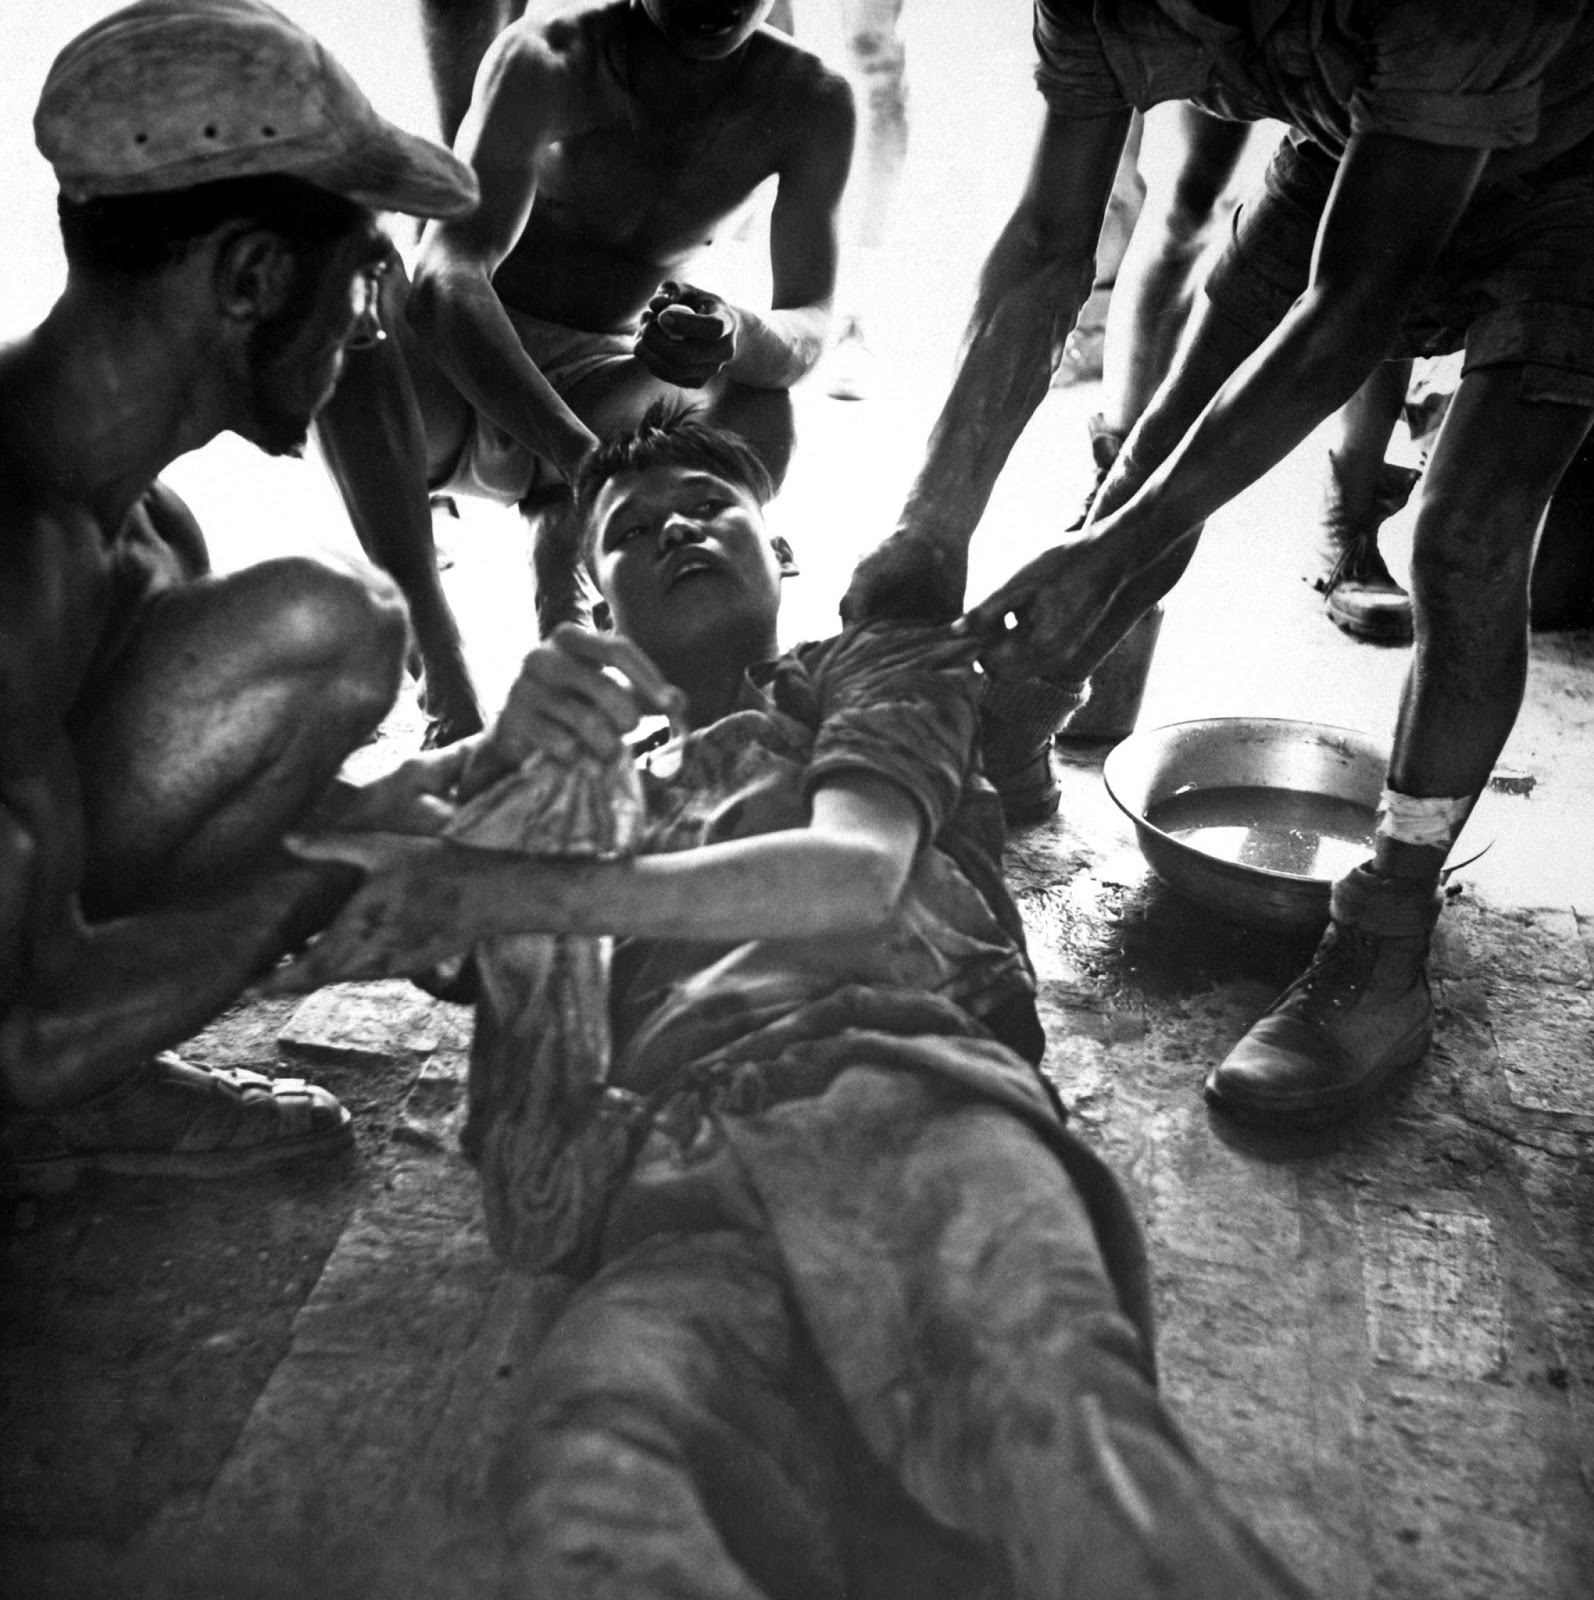 36 Amazing Historical Pictures. #9 Is Unbelievable - A wounded Vietminh prisoner is given first aid by Franco Vietnamese medics after firefight near Hung Yen, south of Hanoi, Vietnam (1954)